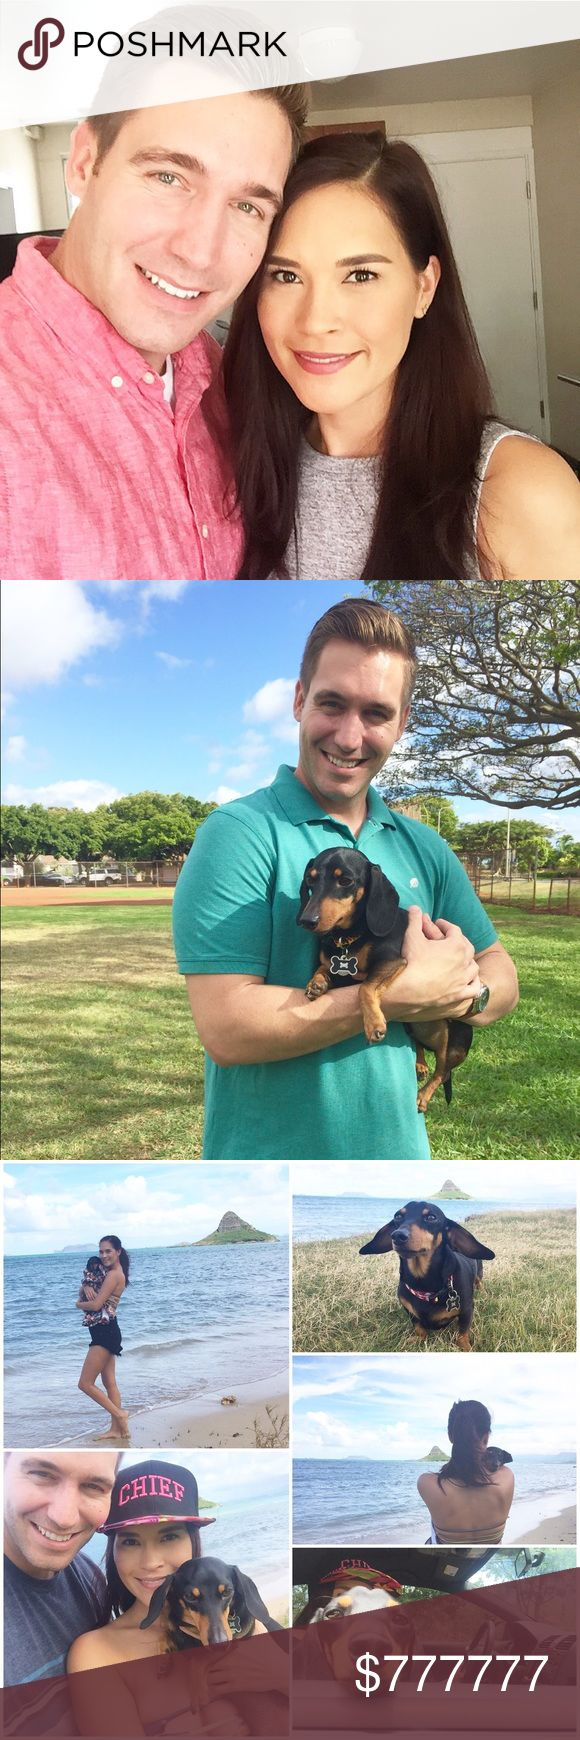 Meet your Posher Living the life in Hawaii, my two boys are my center of attention!  I'm new to Poshmark but absolutely loving it.  Let me know if I can answer any questions, and please know that I am always open to offers!  Happy Poshing! None Other